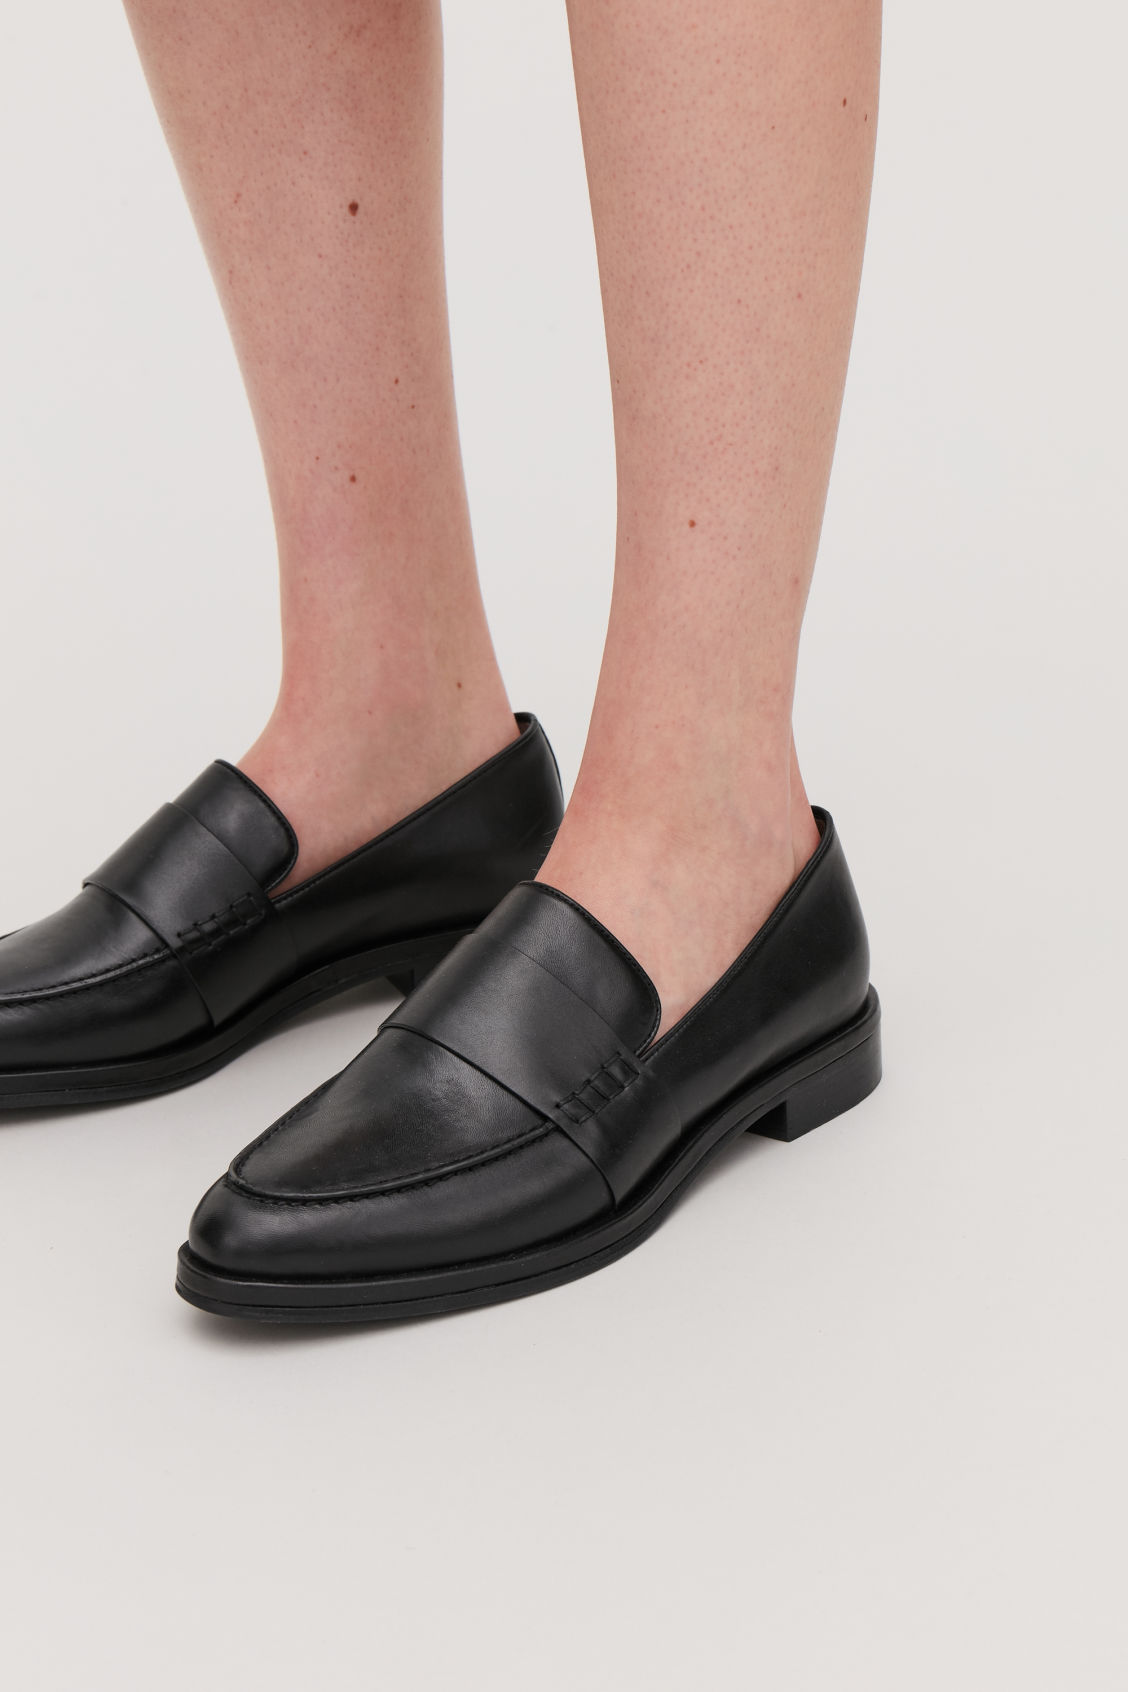 Detailed image of Cos leather loafers in black